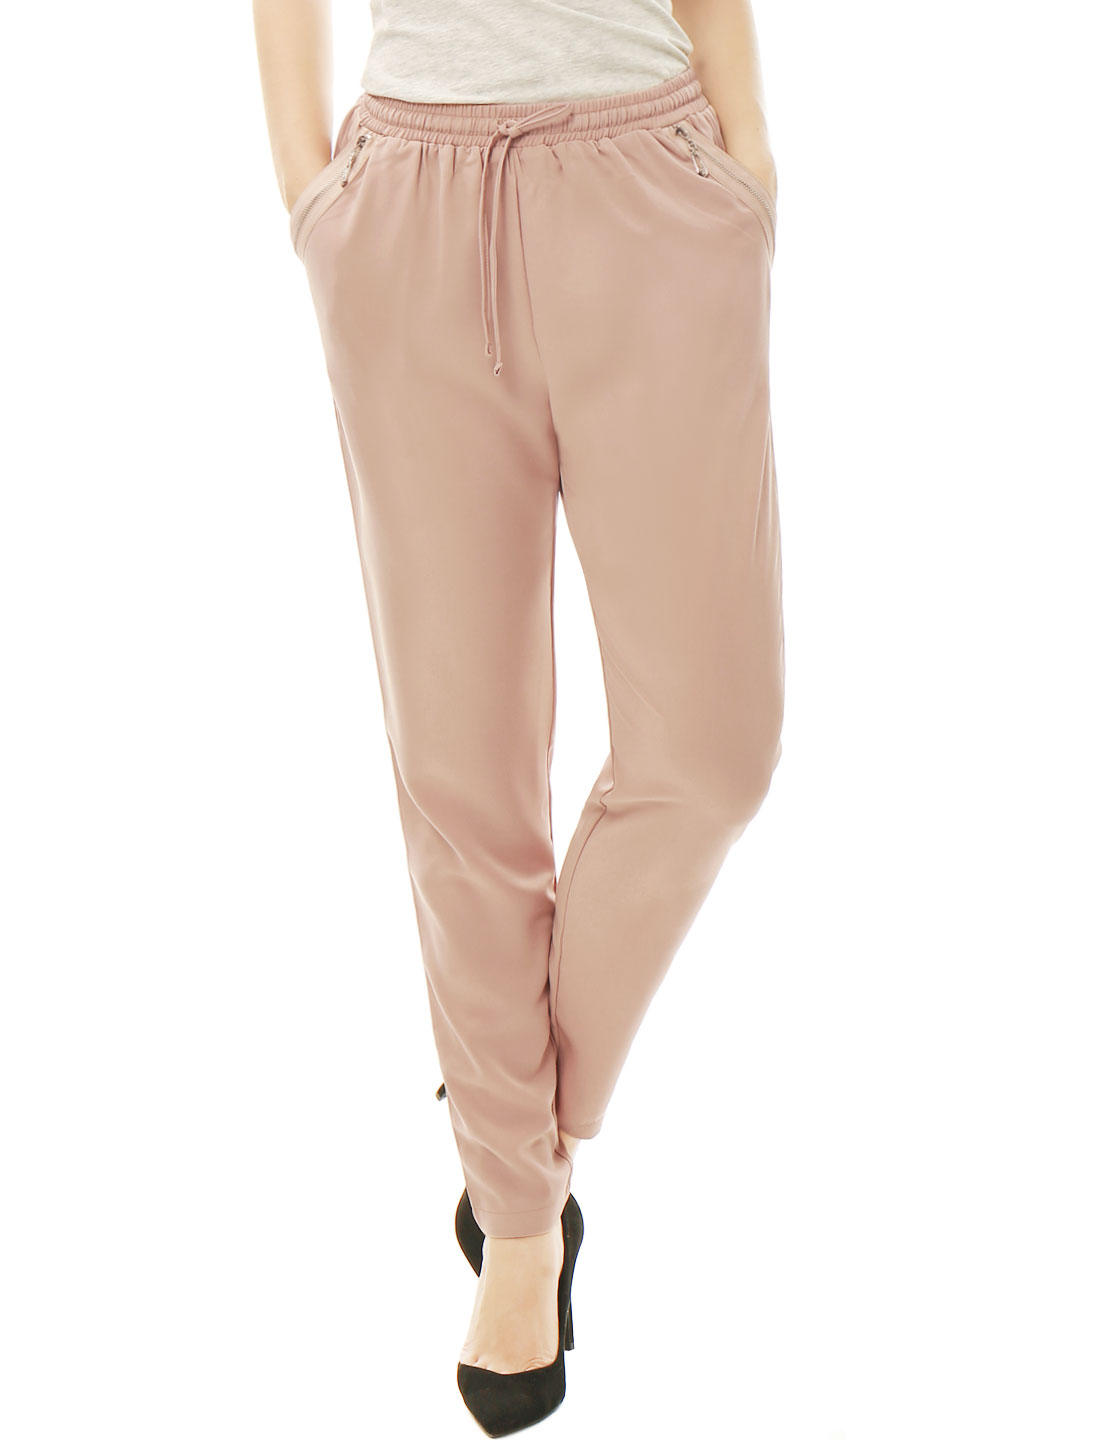 Women Drawstring Elastic Waist Slant Pockets Pants Pink XL